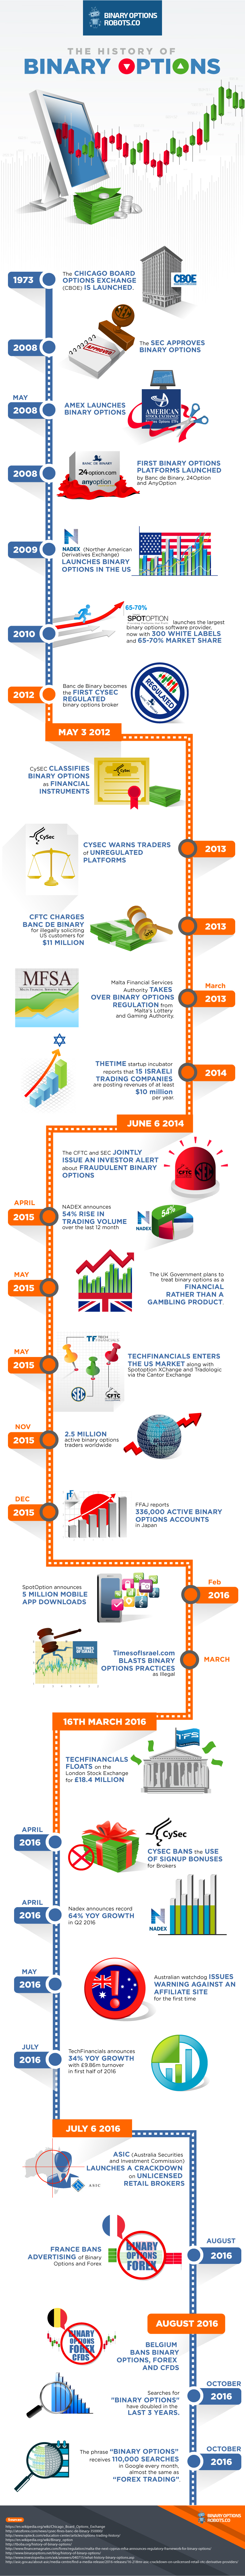 History of binary options trading